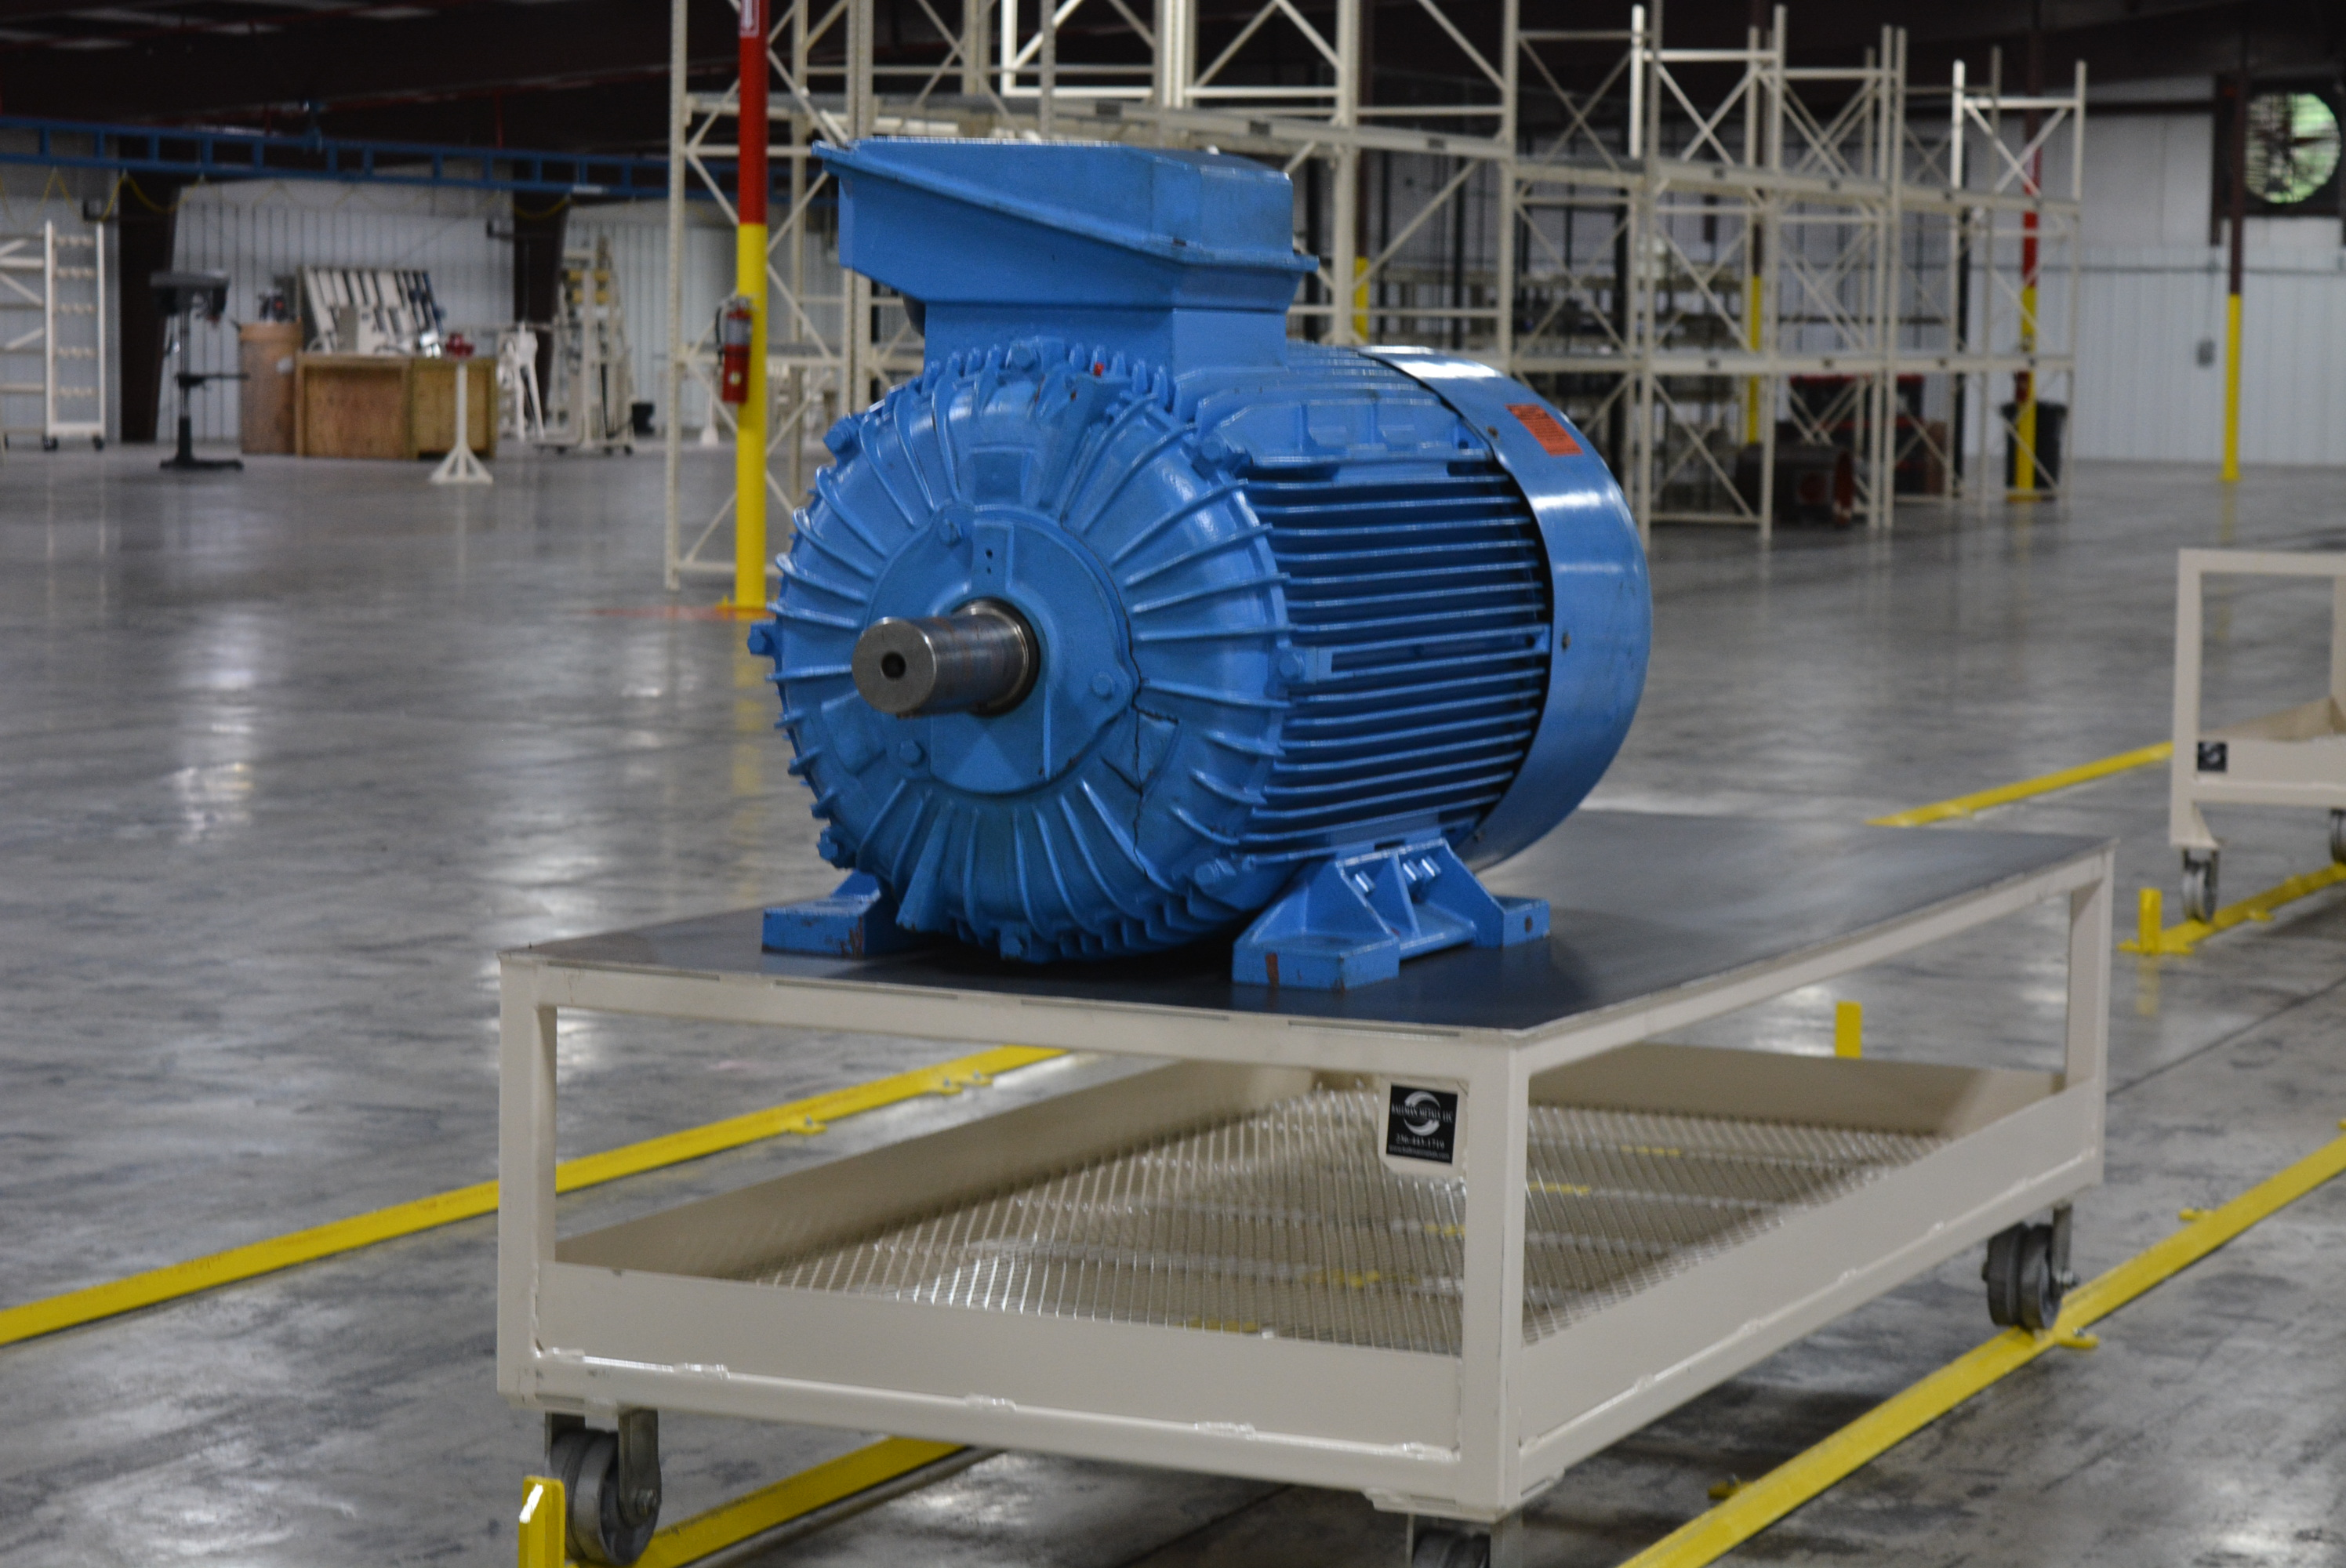 Adventech Brings the Next Disruptive Technology to the Shoals, Manufactures the Industry's Most Efficient Complex Motor Generator